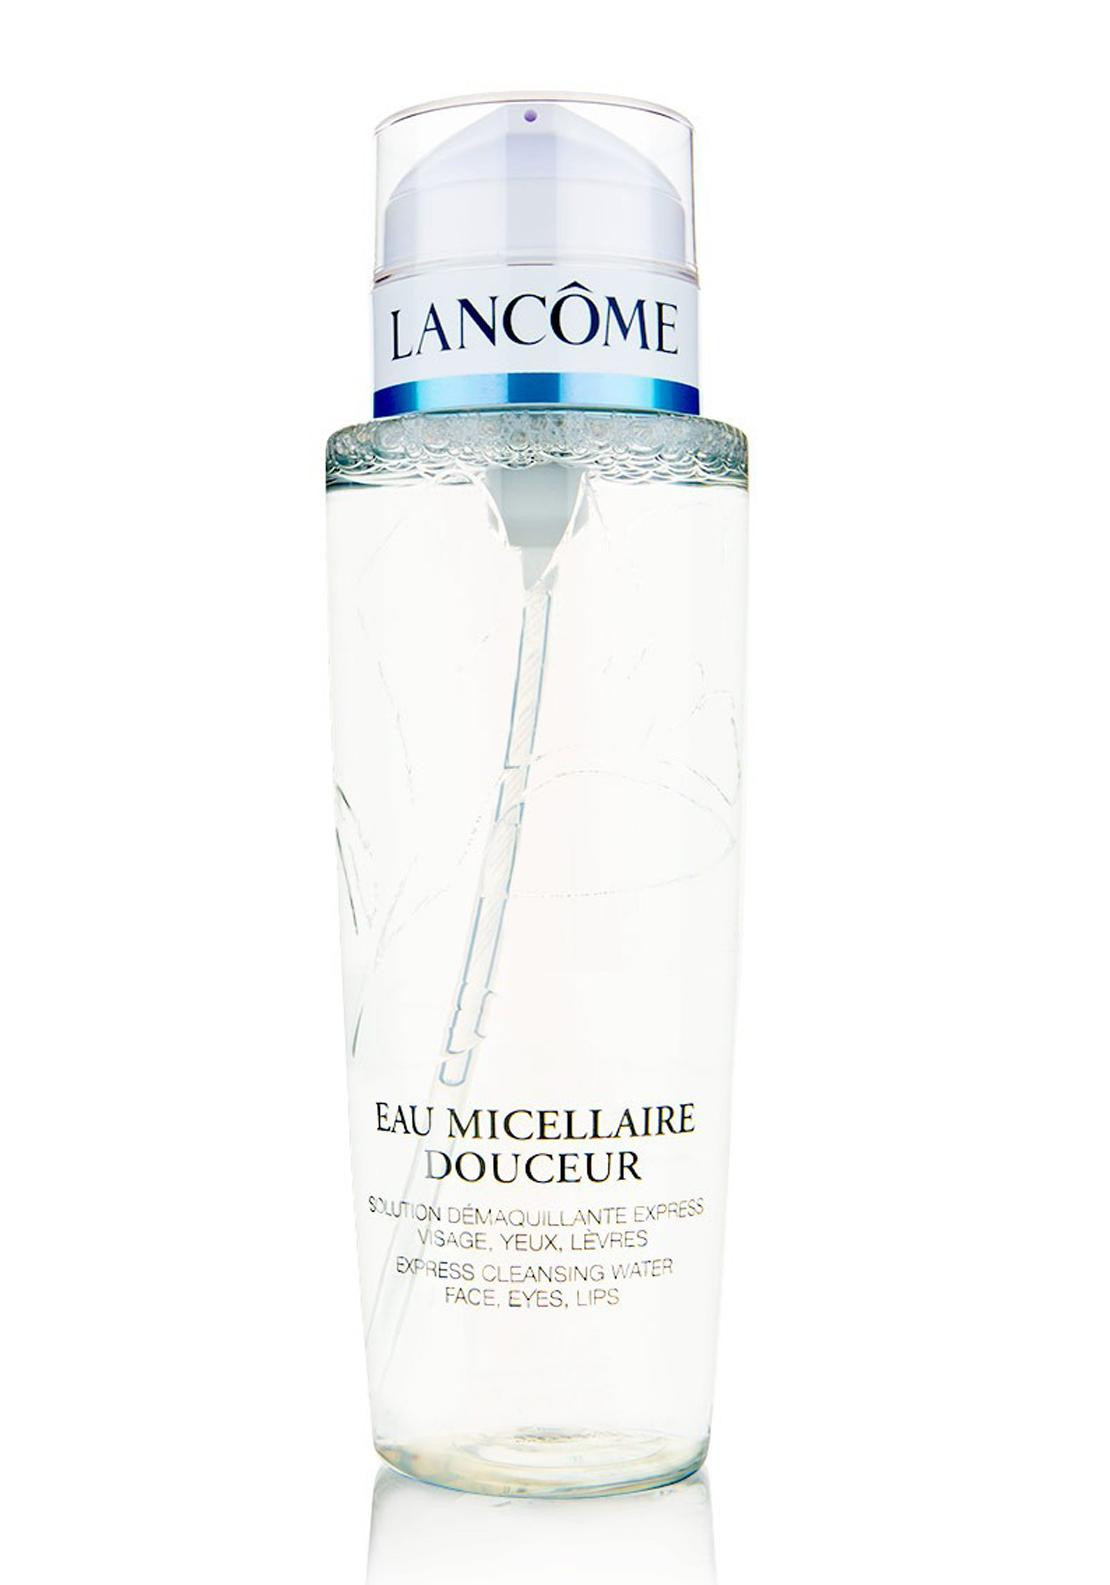 Lancome Eau Micellaire Douceur Cleansing Water Face Eyes Lips 400ML Lancome